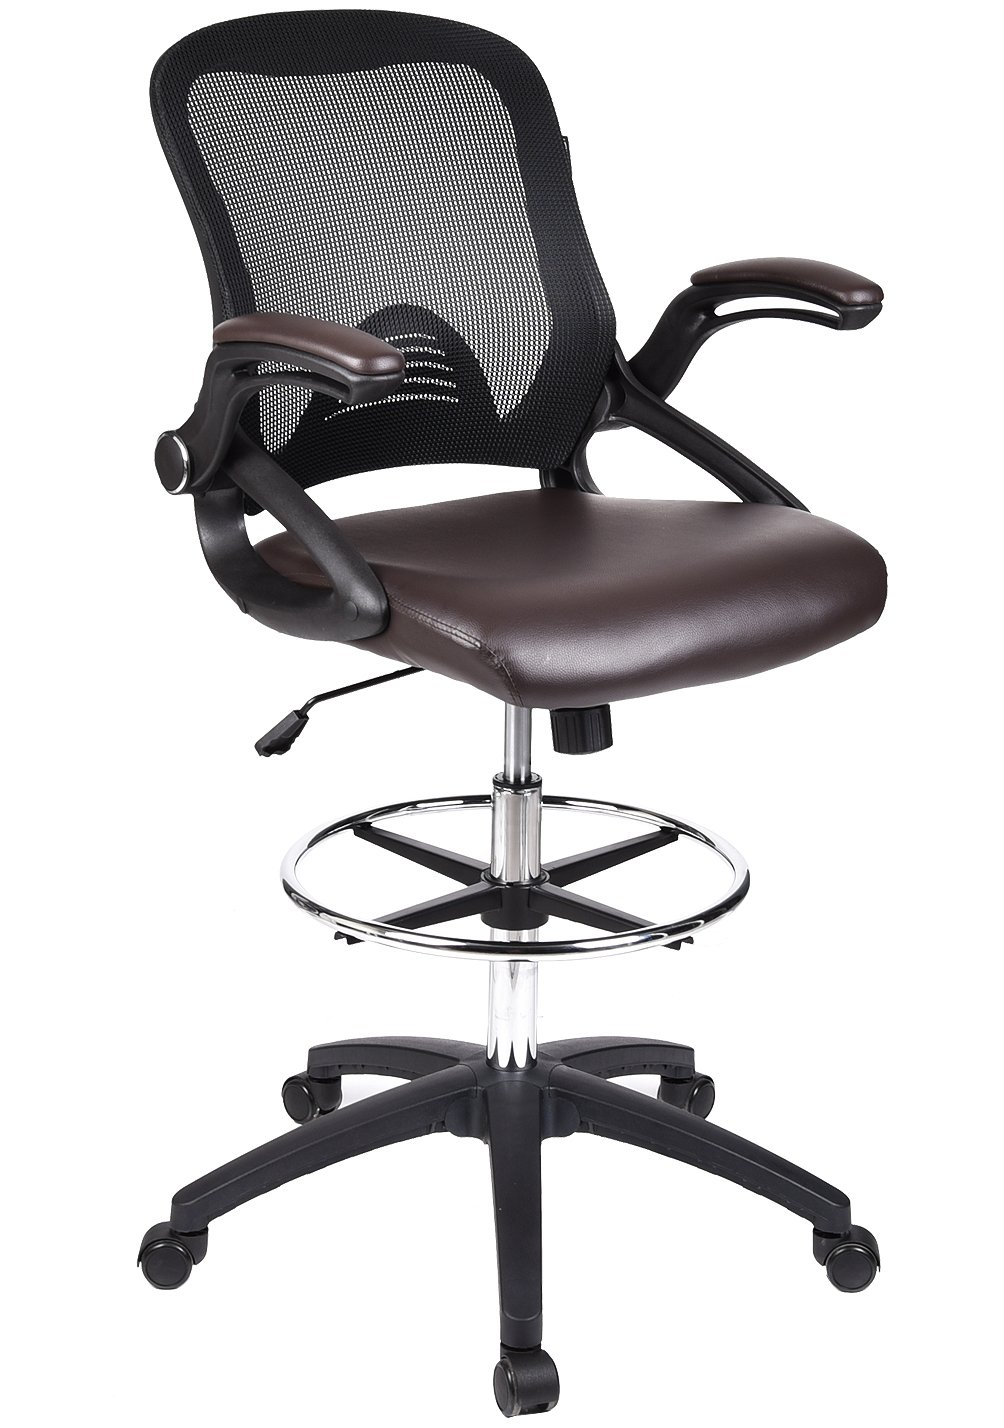 Drafting Chairs Online Shopping For Clothing Shoes